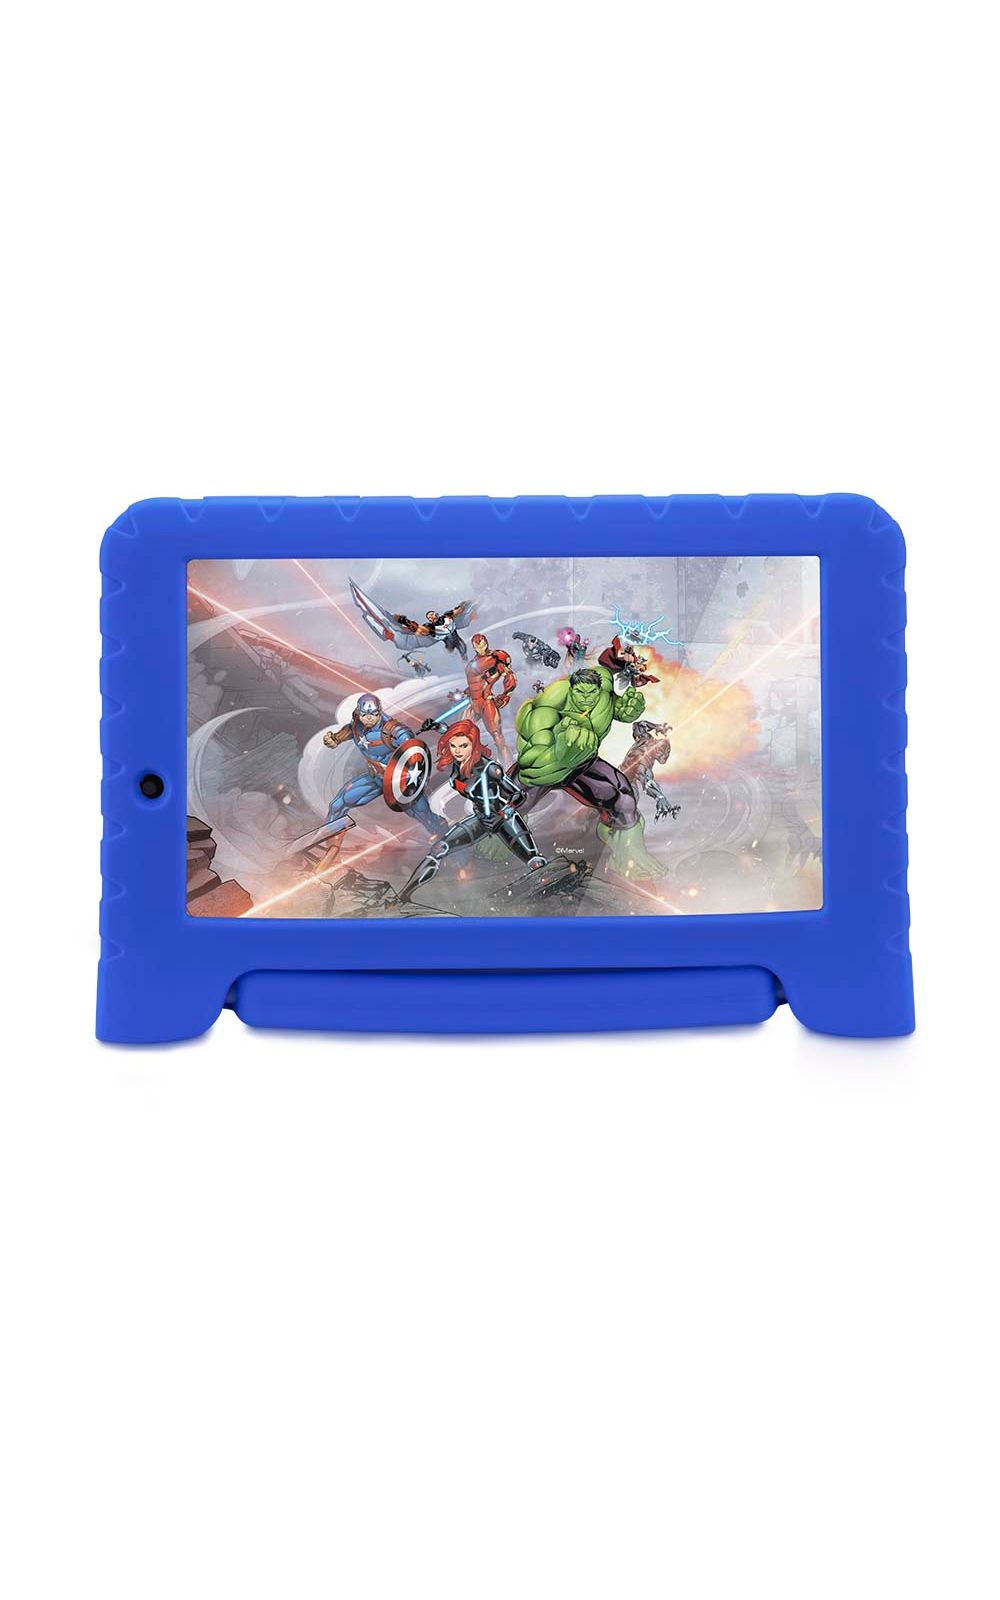 Foto 1 - Tablet Disney Vingadores Plus Wifi 8GB Android 7 Dual Câmera Azul Multilaser - NB280